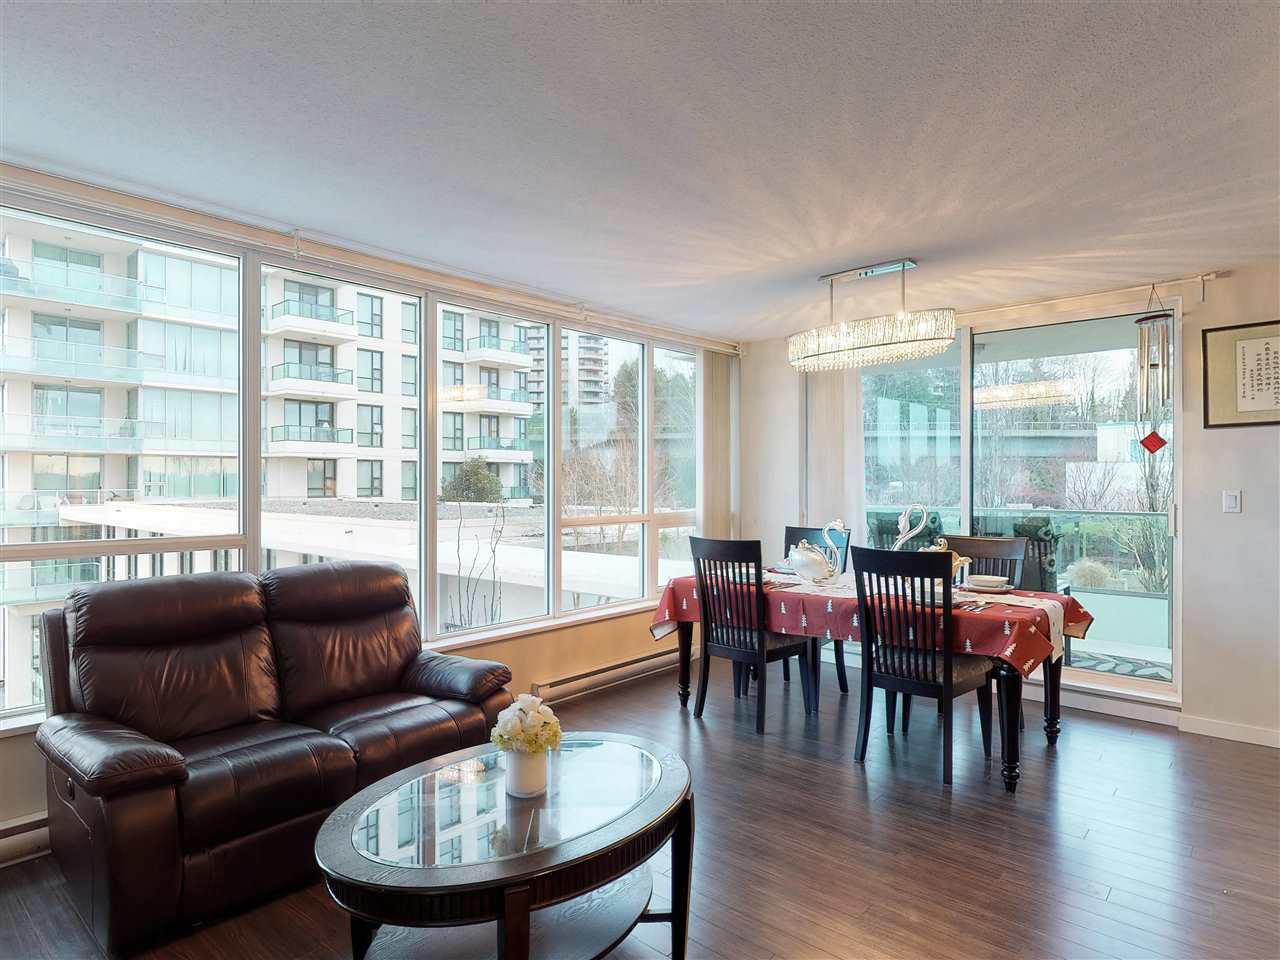 Photo 5: Photos: 405 2232 DOUGLAS ROAD in Burnaby: Brentwood Park Condo for sale (Burnaby North)  : MLS®# R2347040